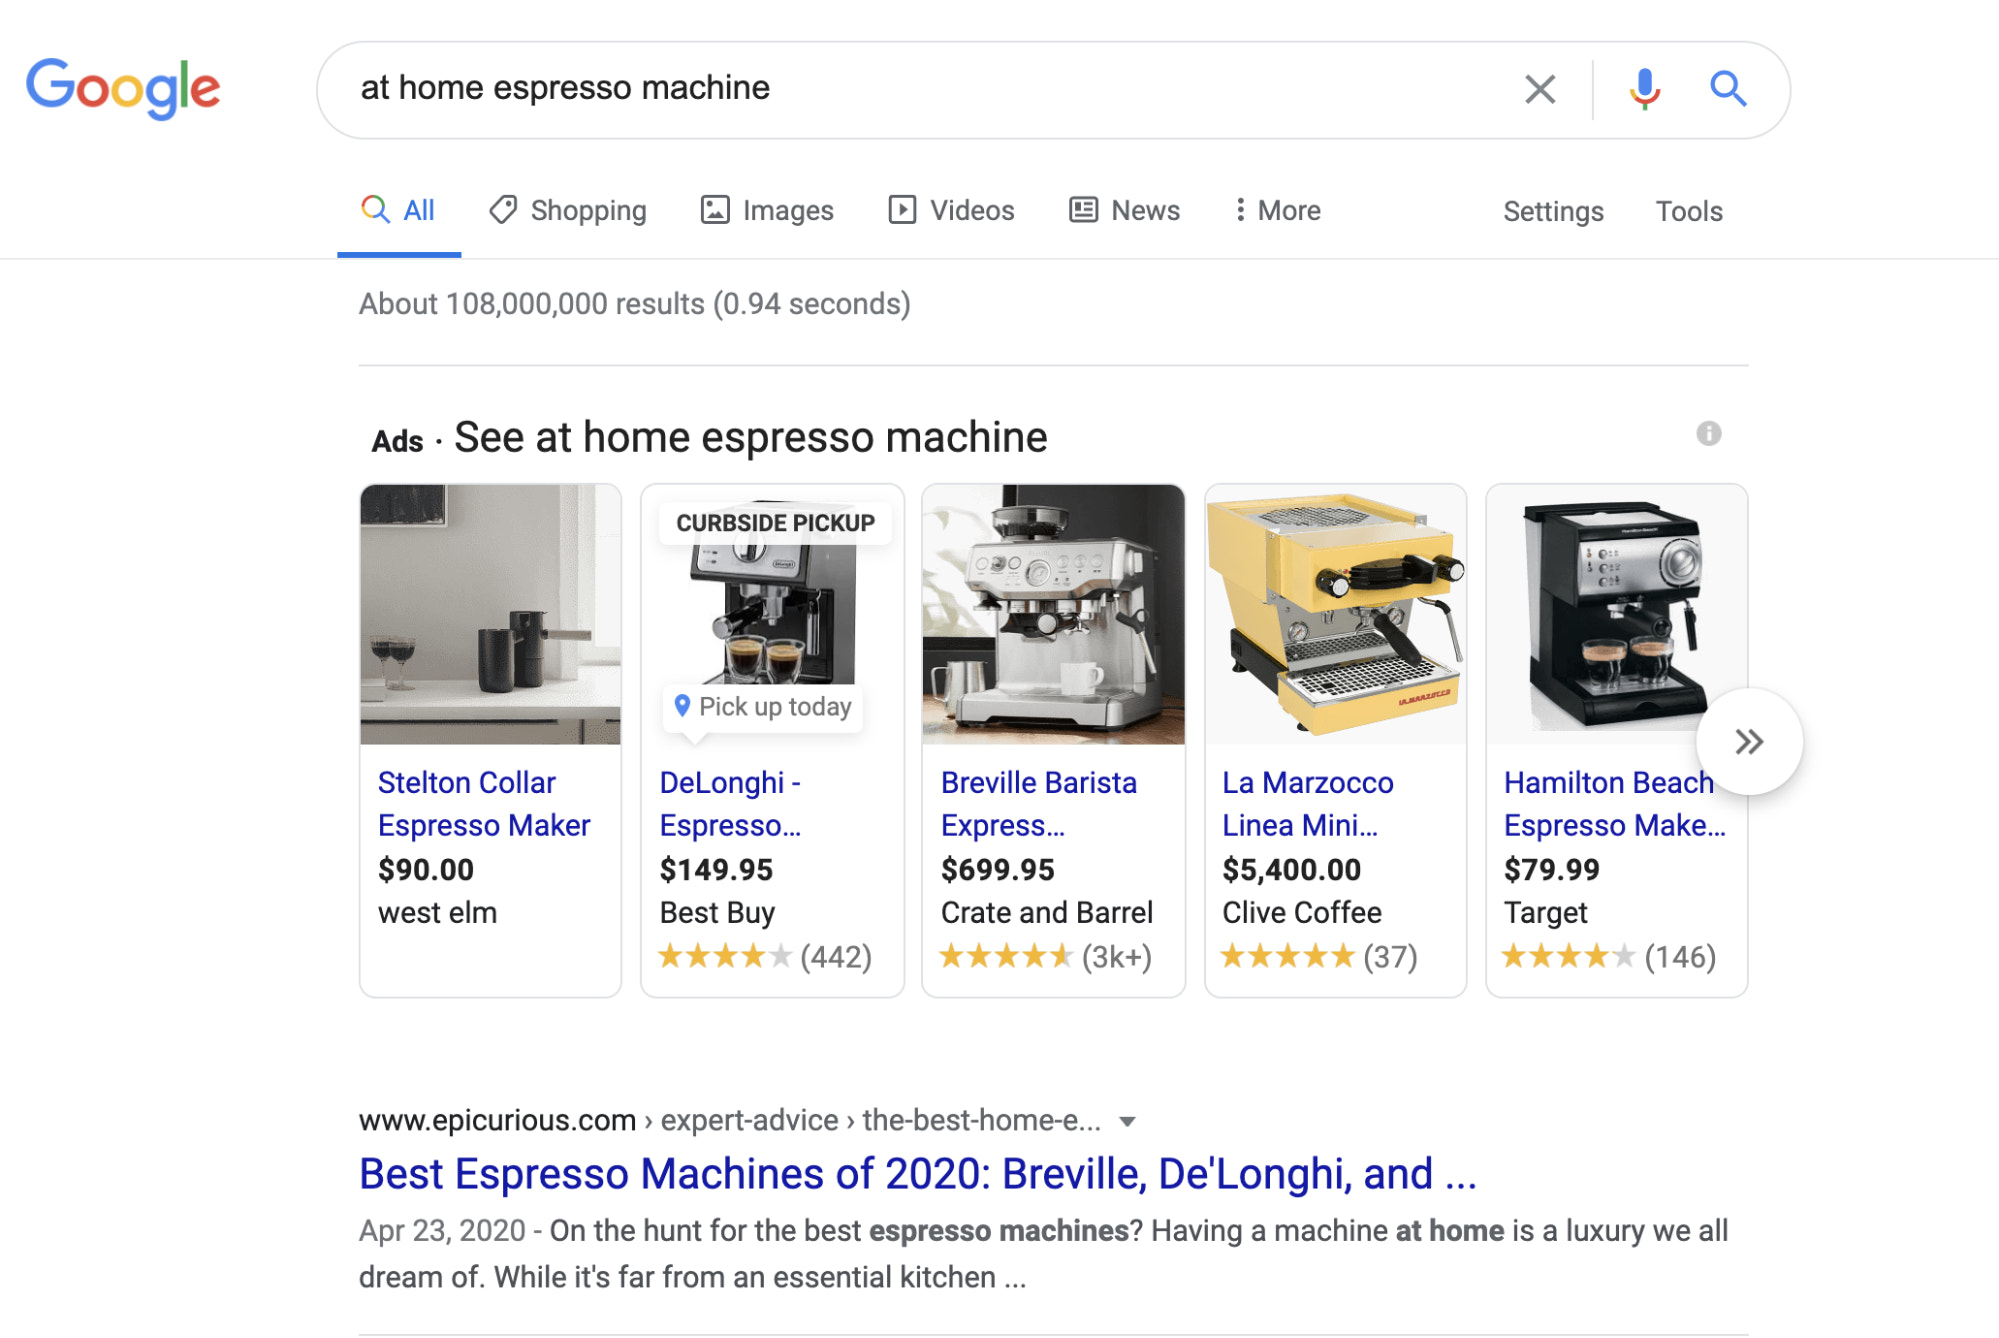 Paid placements only Shopping Ads appear in Google listings